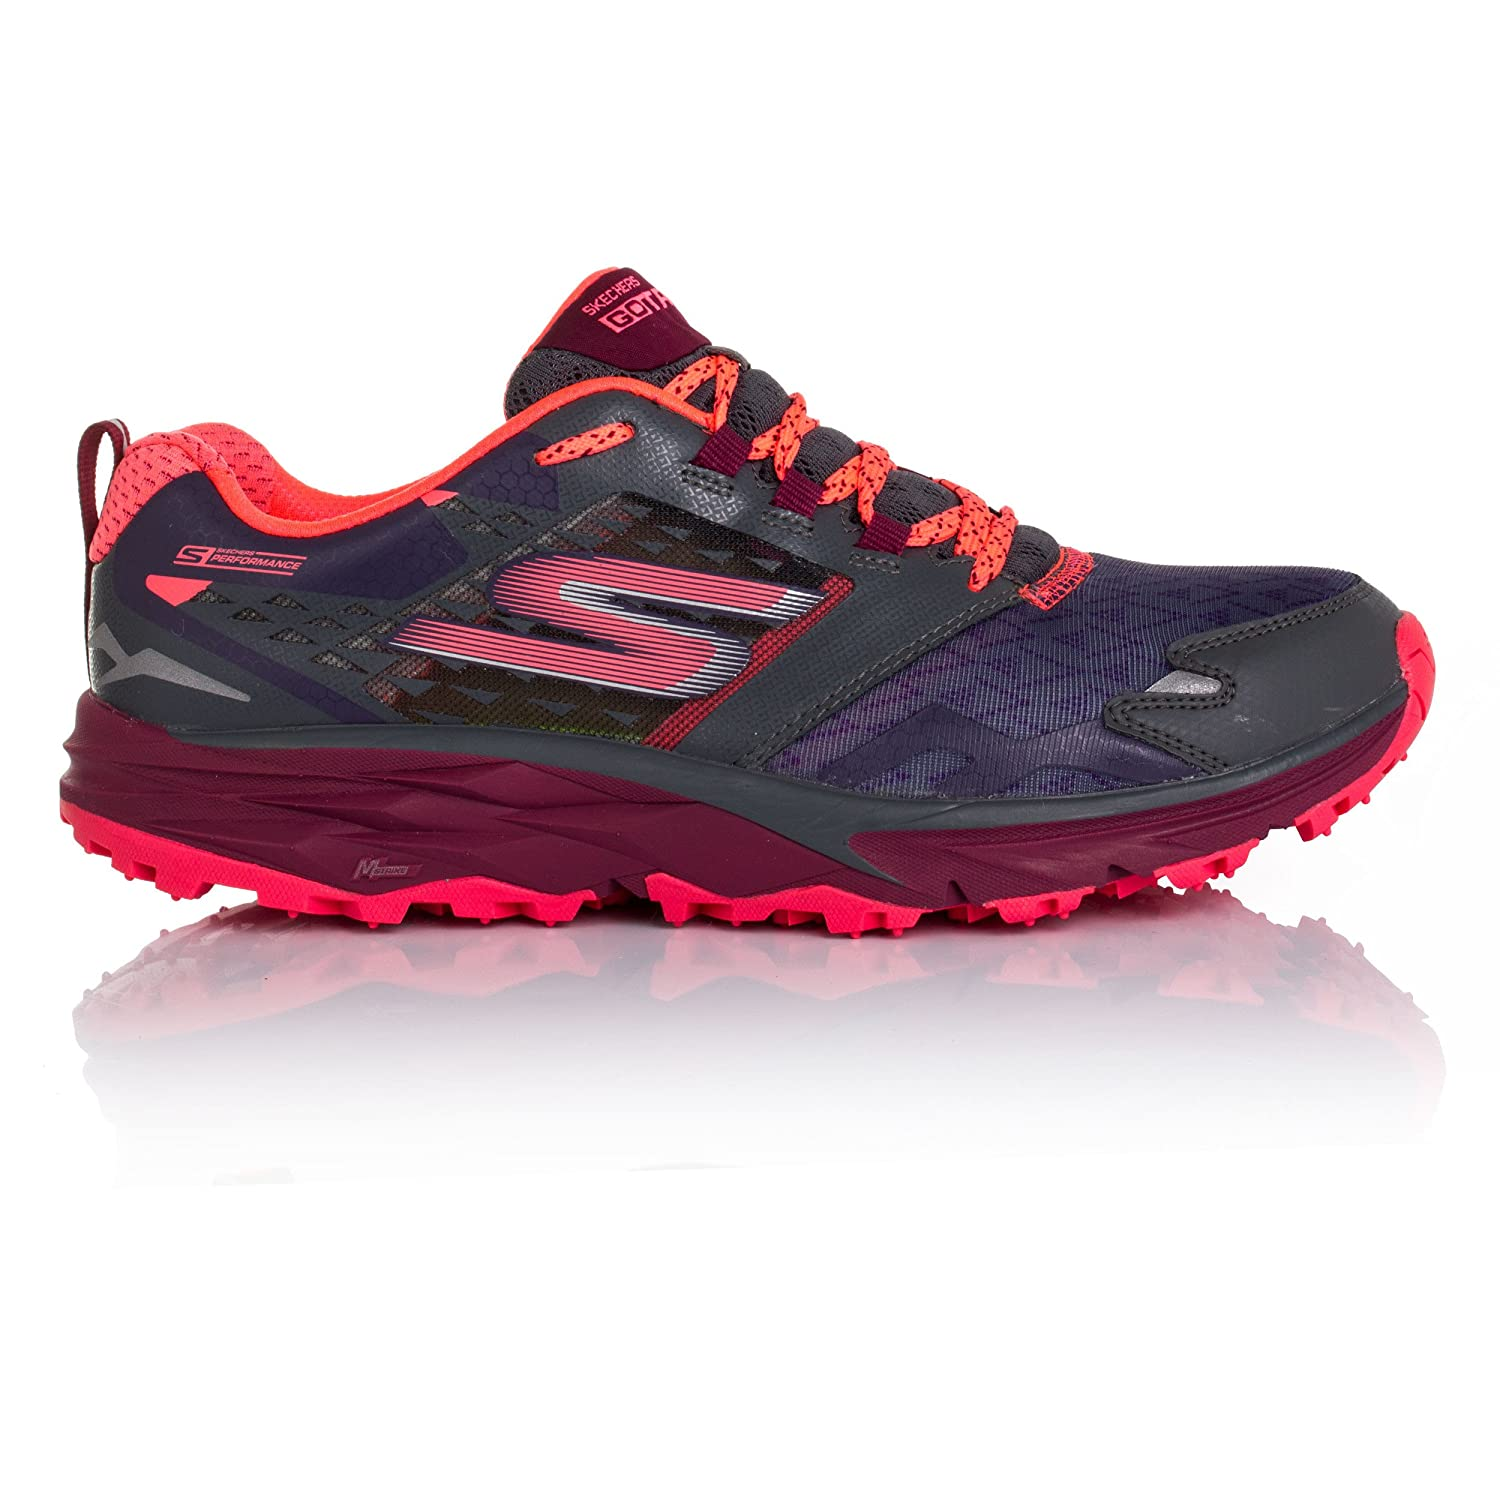 Skechers Women's Go Trail B019J7YRIK 6 B(M) US|Charcoal/Multi